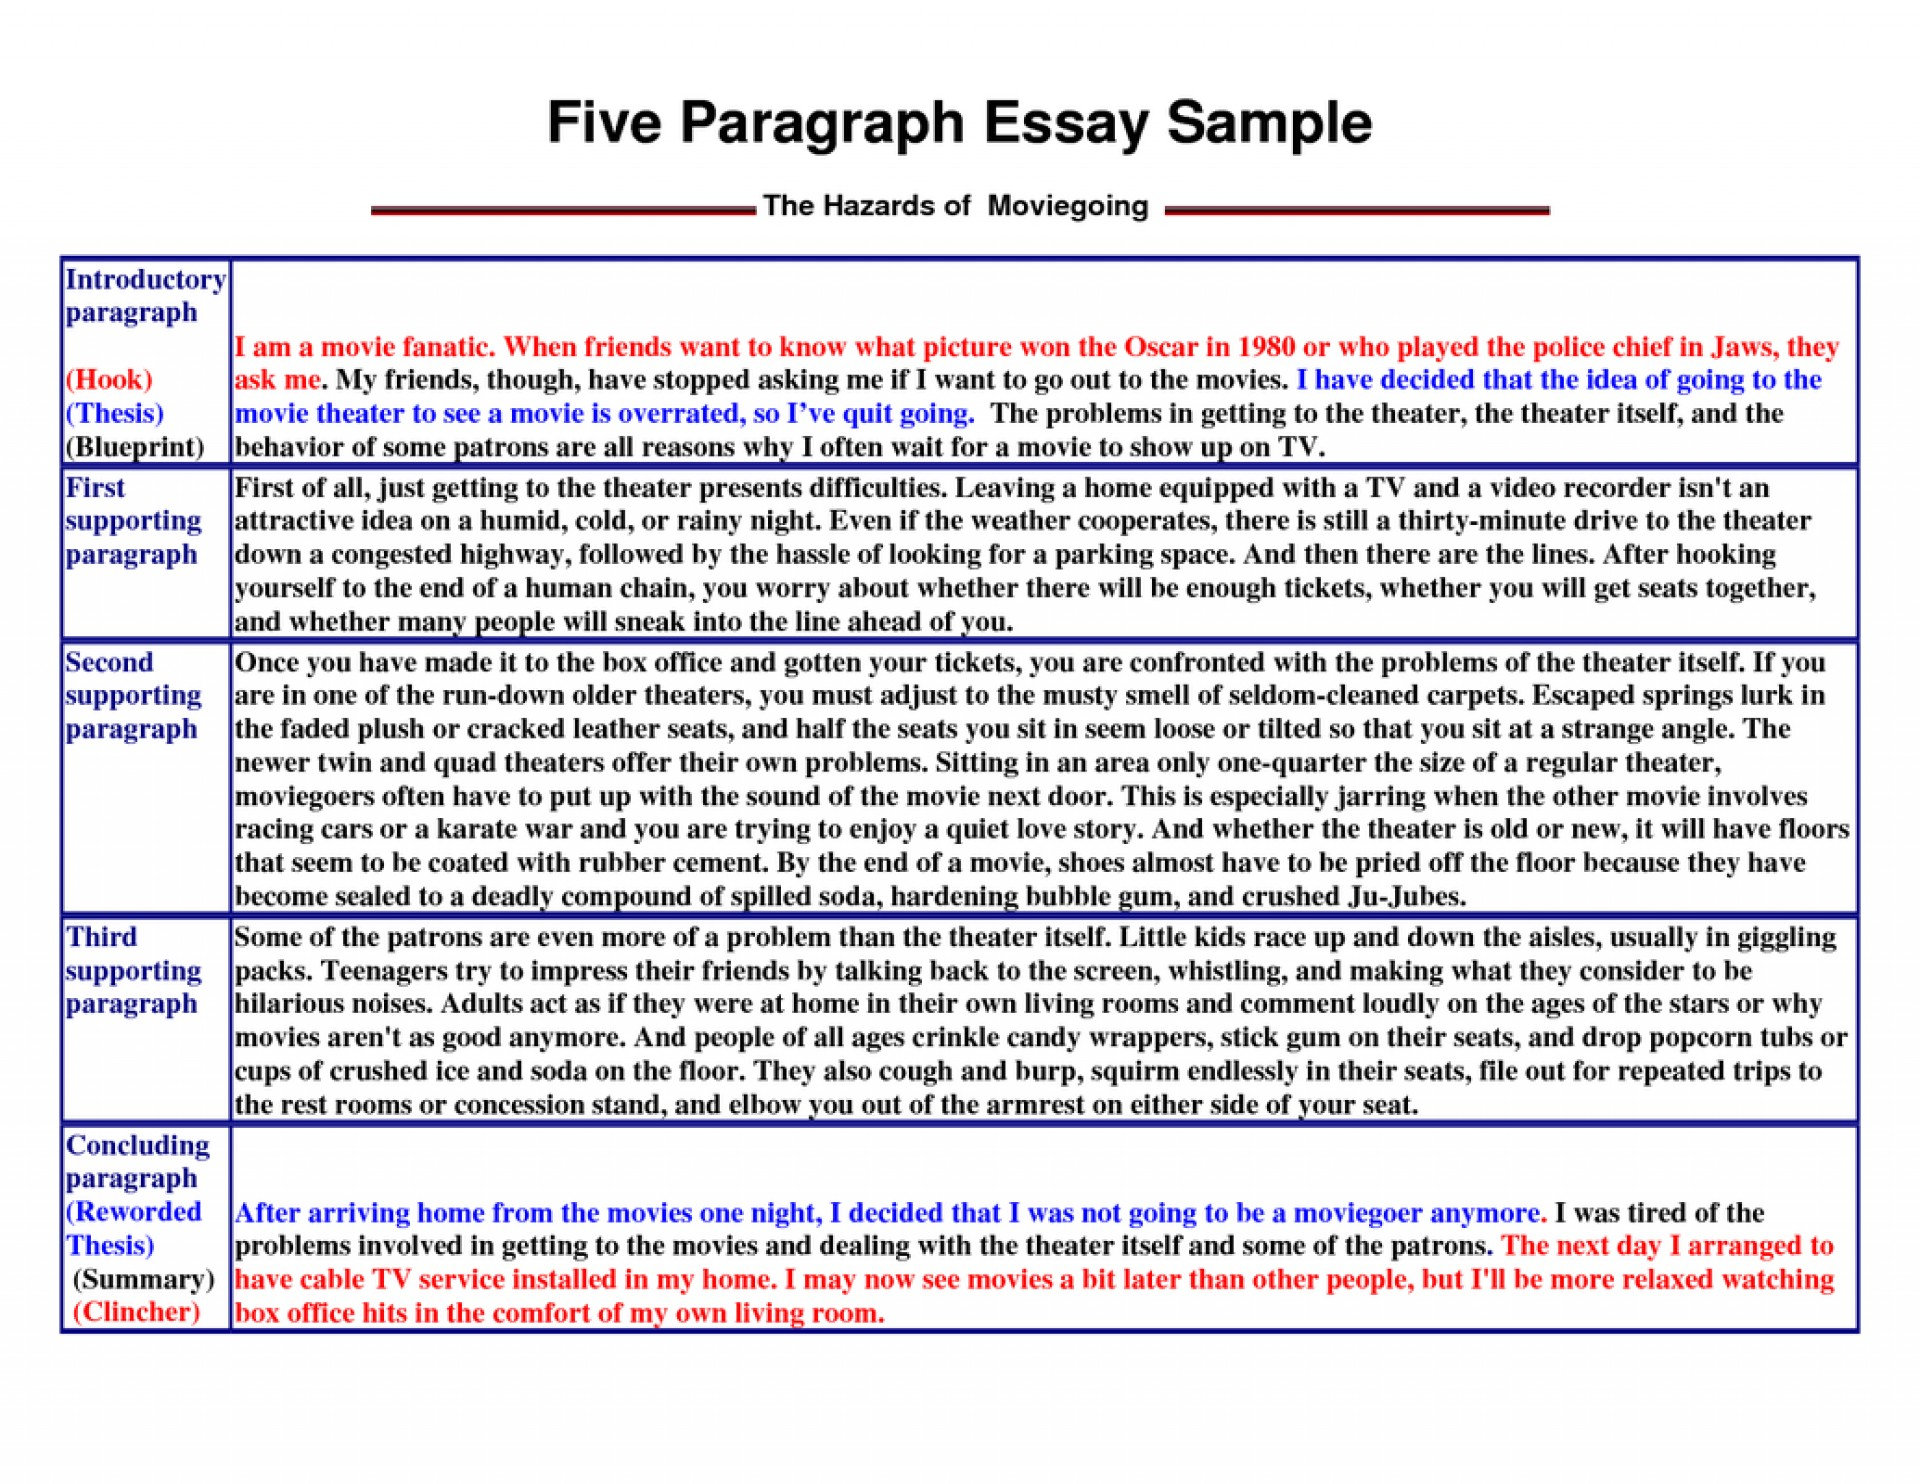 003 Essay Example How To Write An Introduction Paragraph For 7897635 Orig Best Argumentative About A Book Ppt 1920